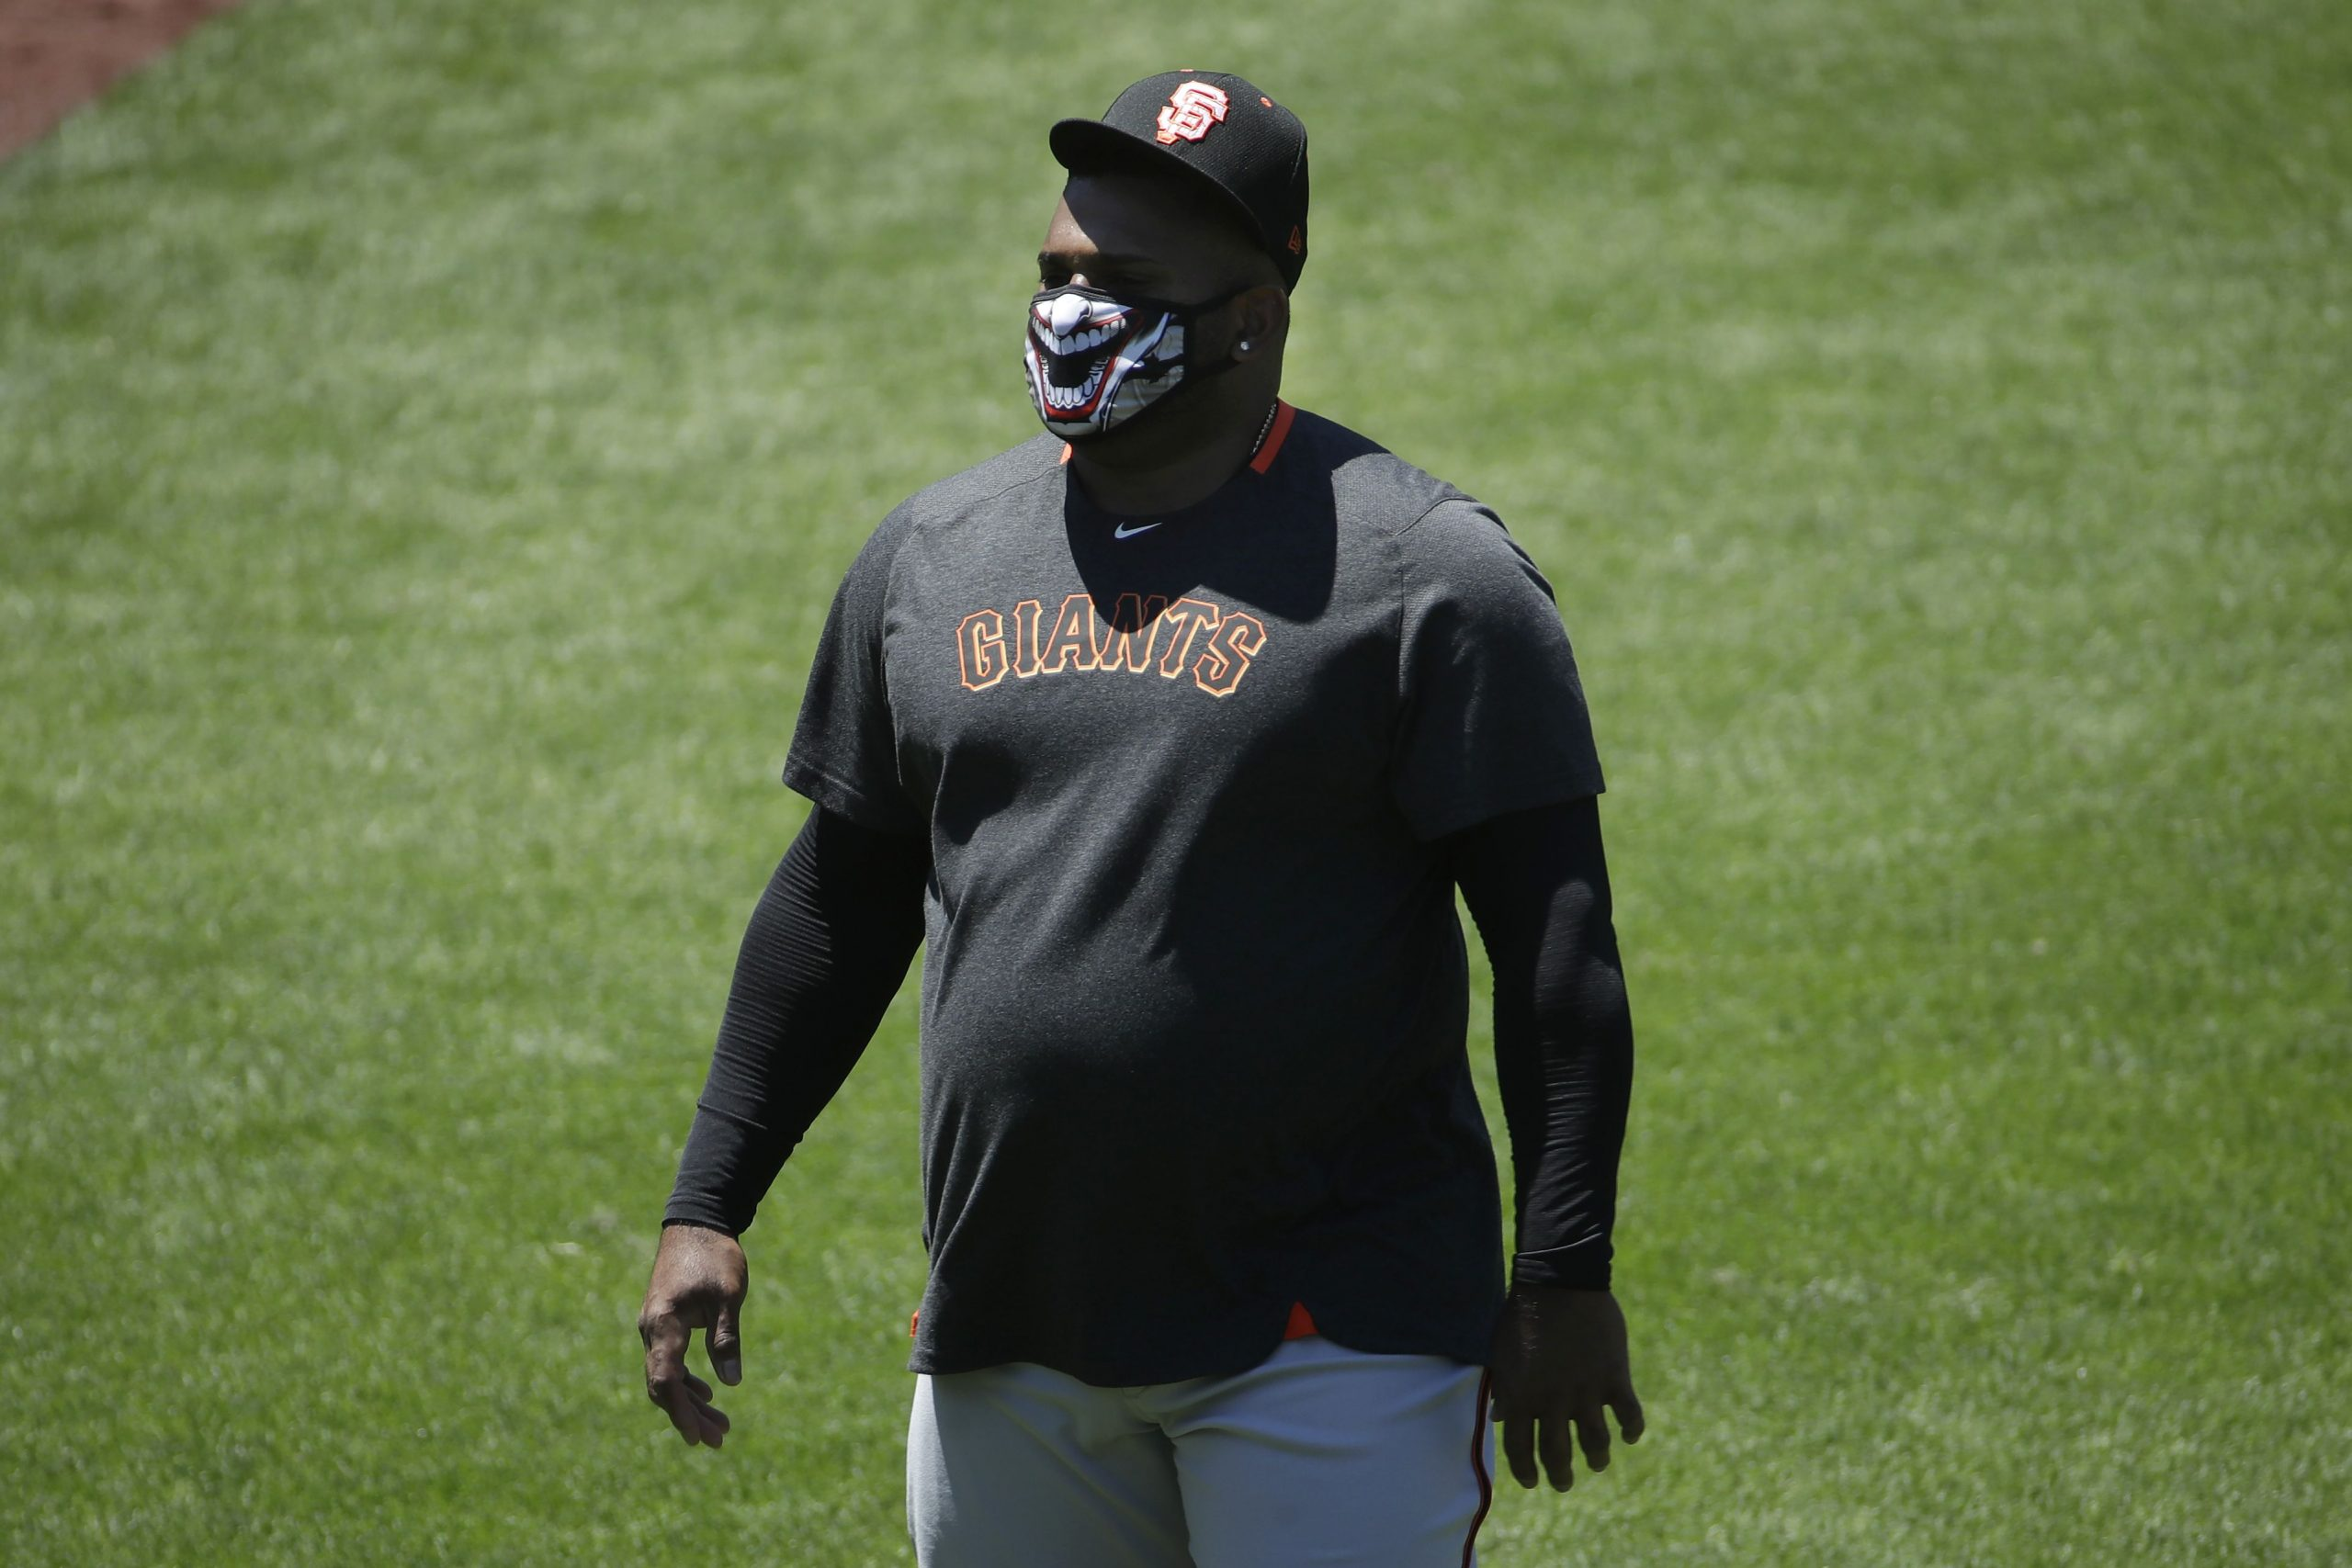 Giants manager Gabe Kapler defends Pablo Sandoval